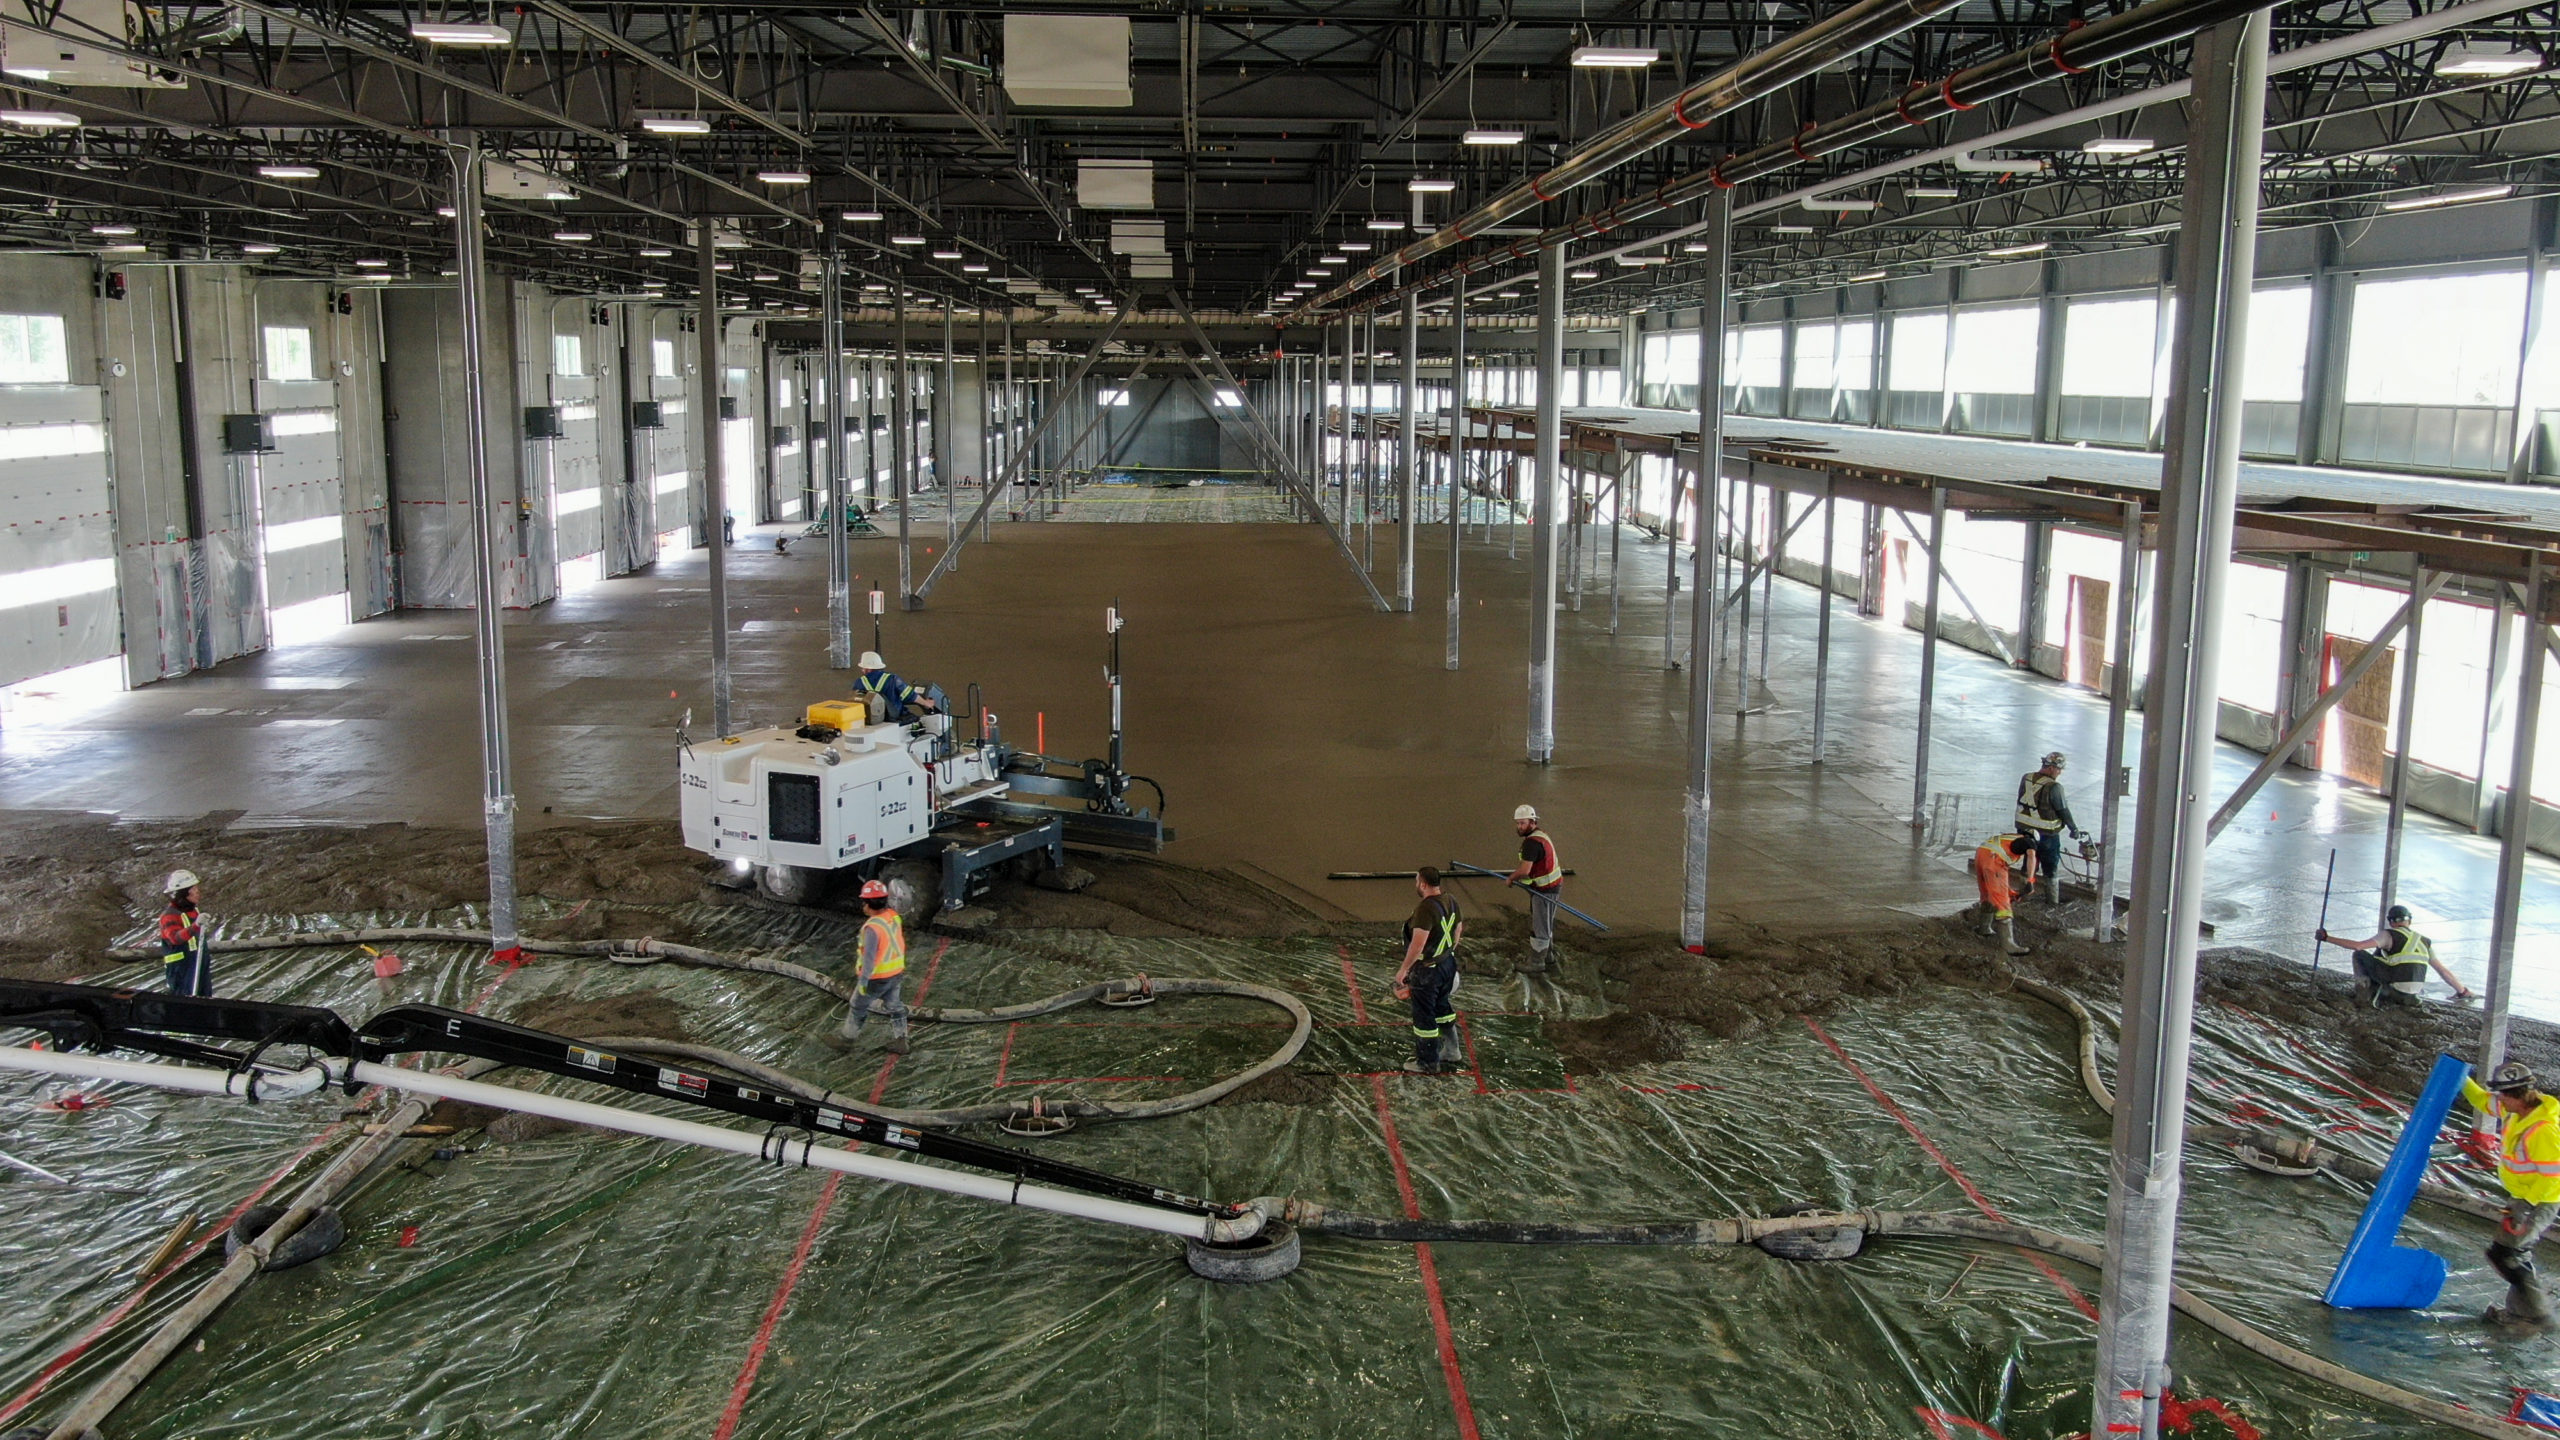 flat concrete floors being placed inside the HF11 industrial condo development project